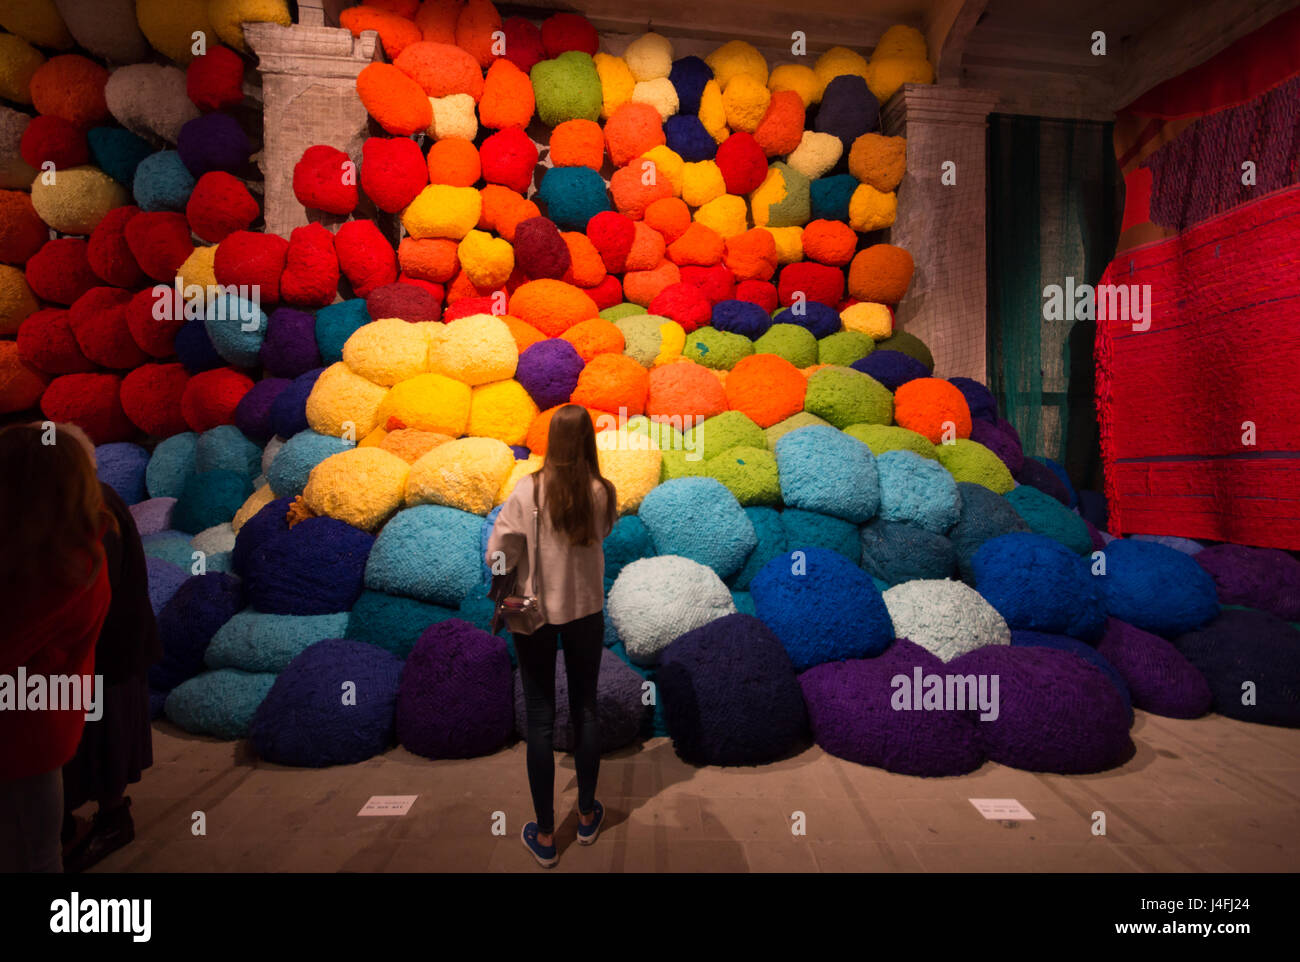 Sheila Hicks, Escalade Beyond Chromatic Lands, installation, 57th Venice Art Biennale 2017, core exhibition at Arsenale - Stock Image